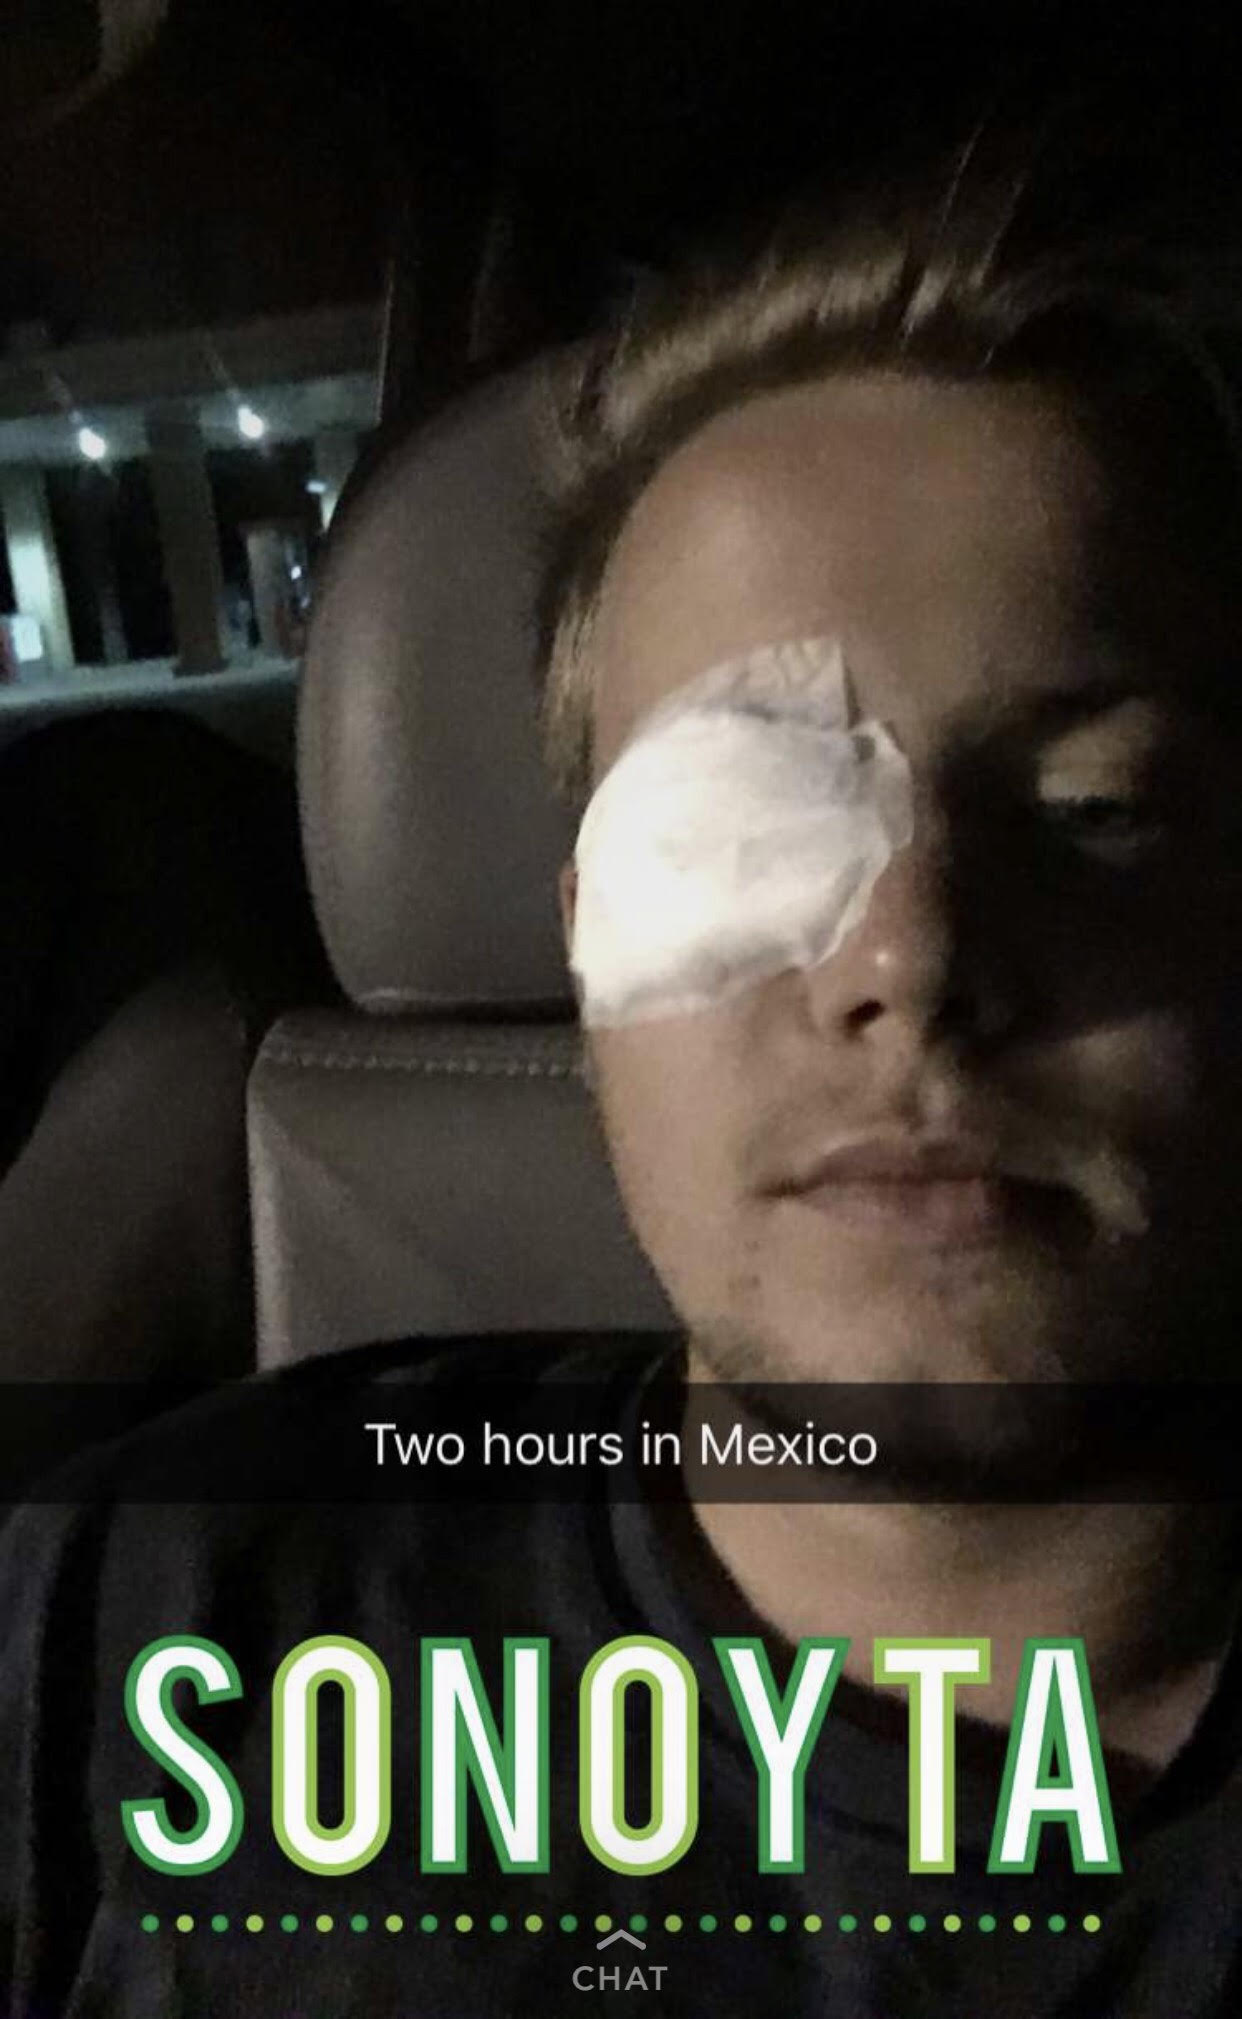 Two hours in Mexico and he lost a goddamn eye.